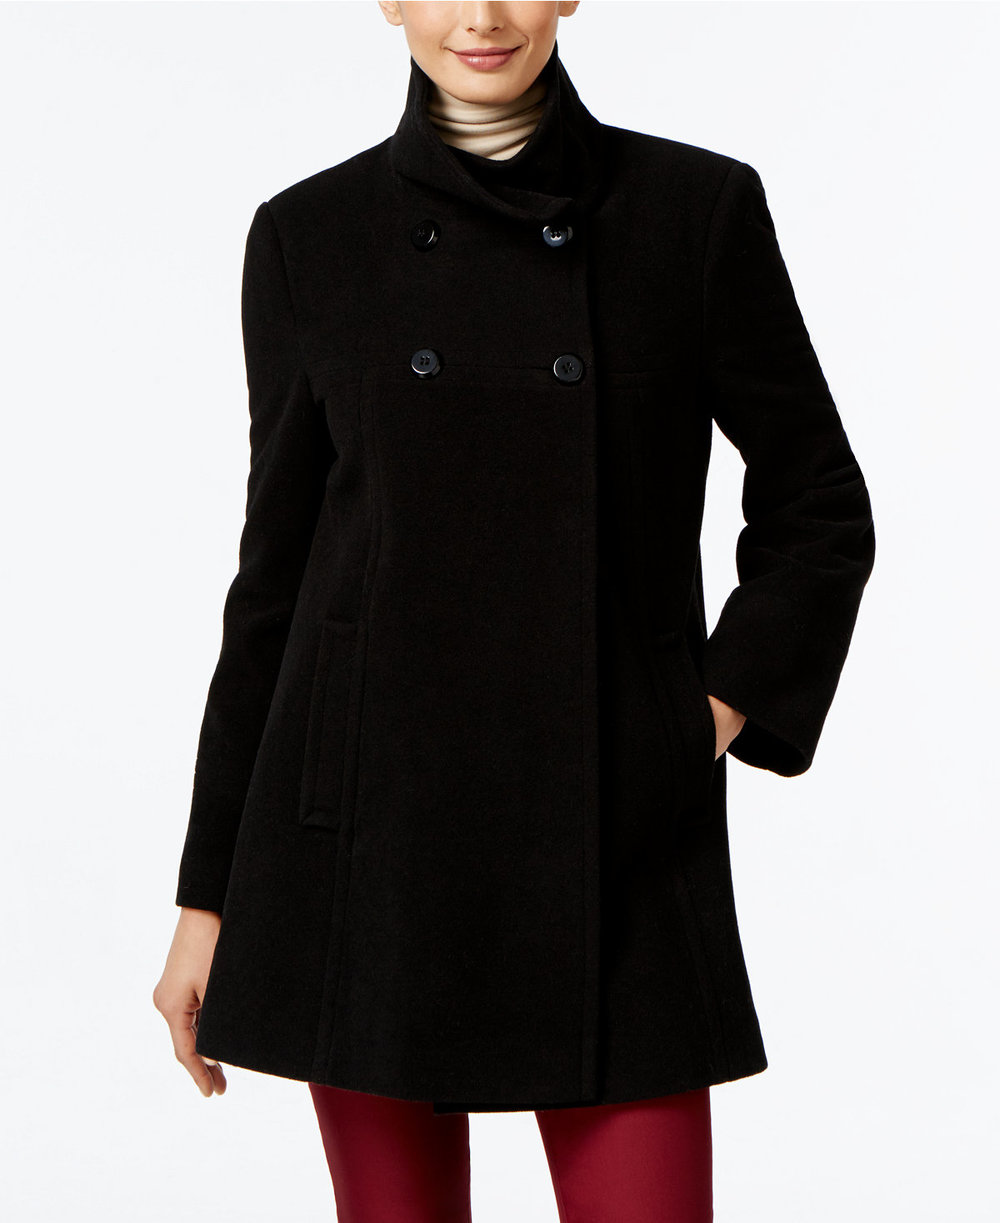 Larry Levine   Double-Breasted Babydoll Swing Coat. Macy's. Was: $245. Now: $109.